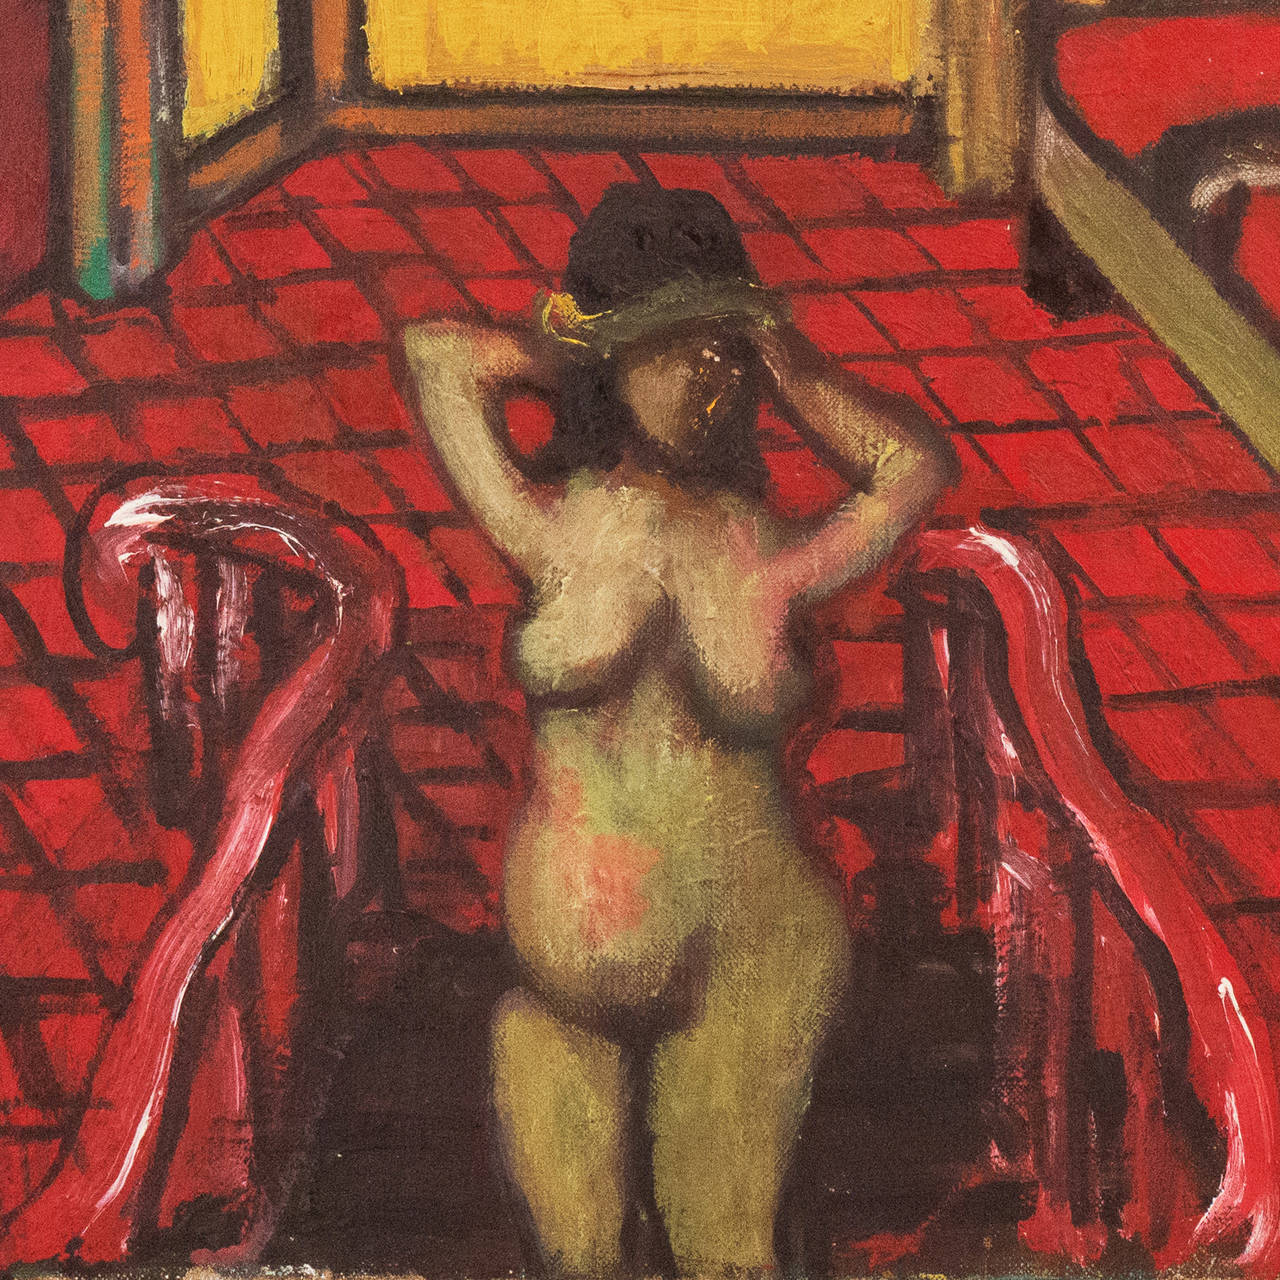 Large Post-Impressionist Interior with a Nude on a Staircase - Brown Figurative Painting by Sasha Moldovan